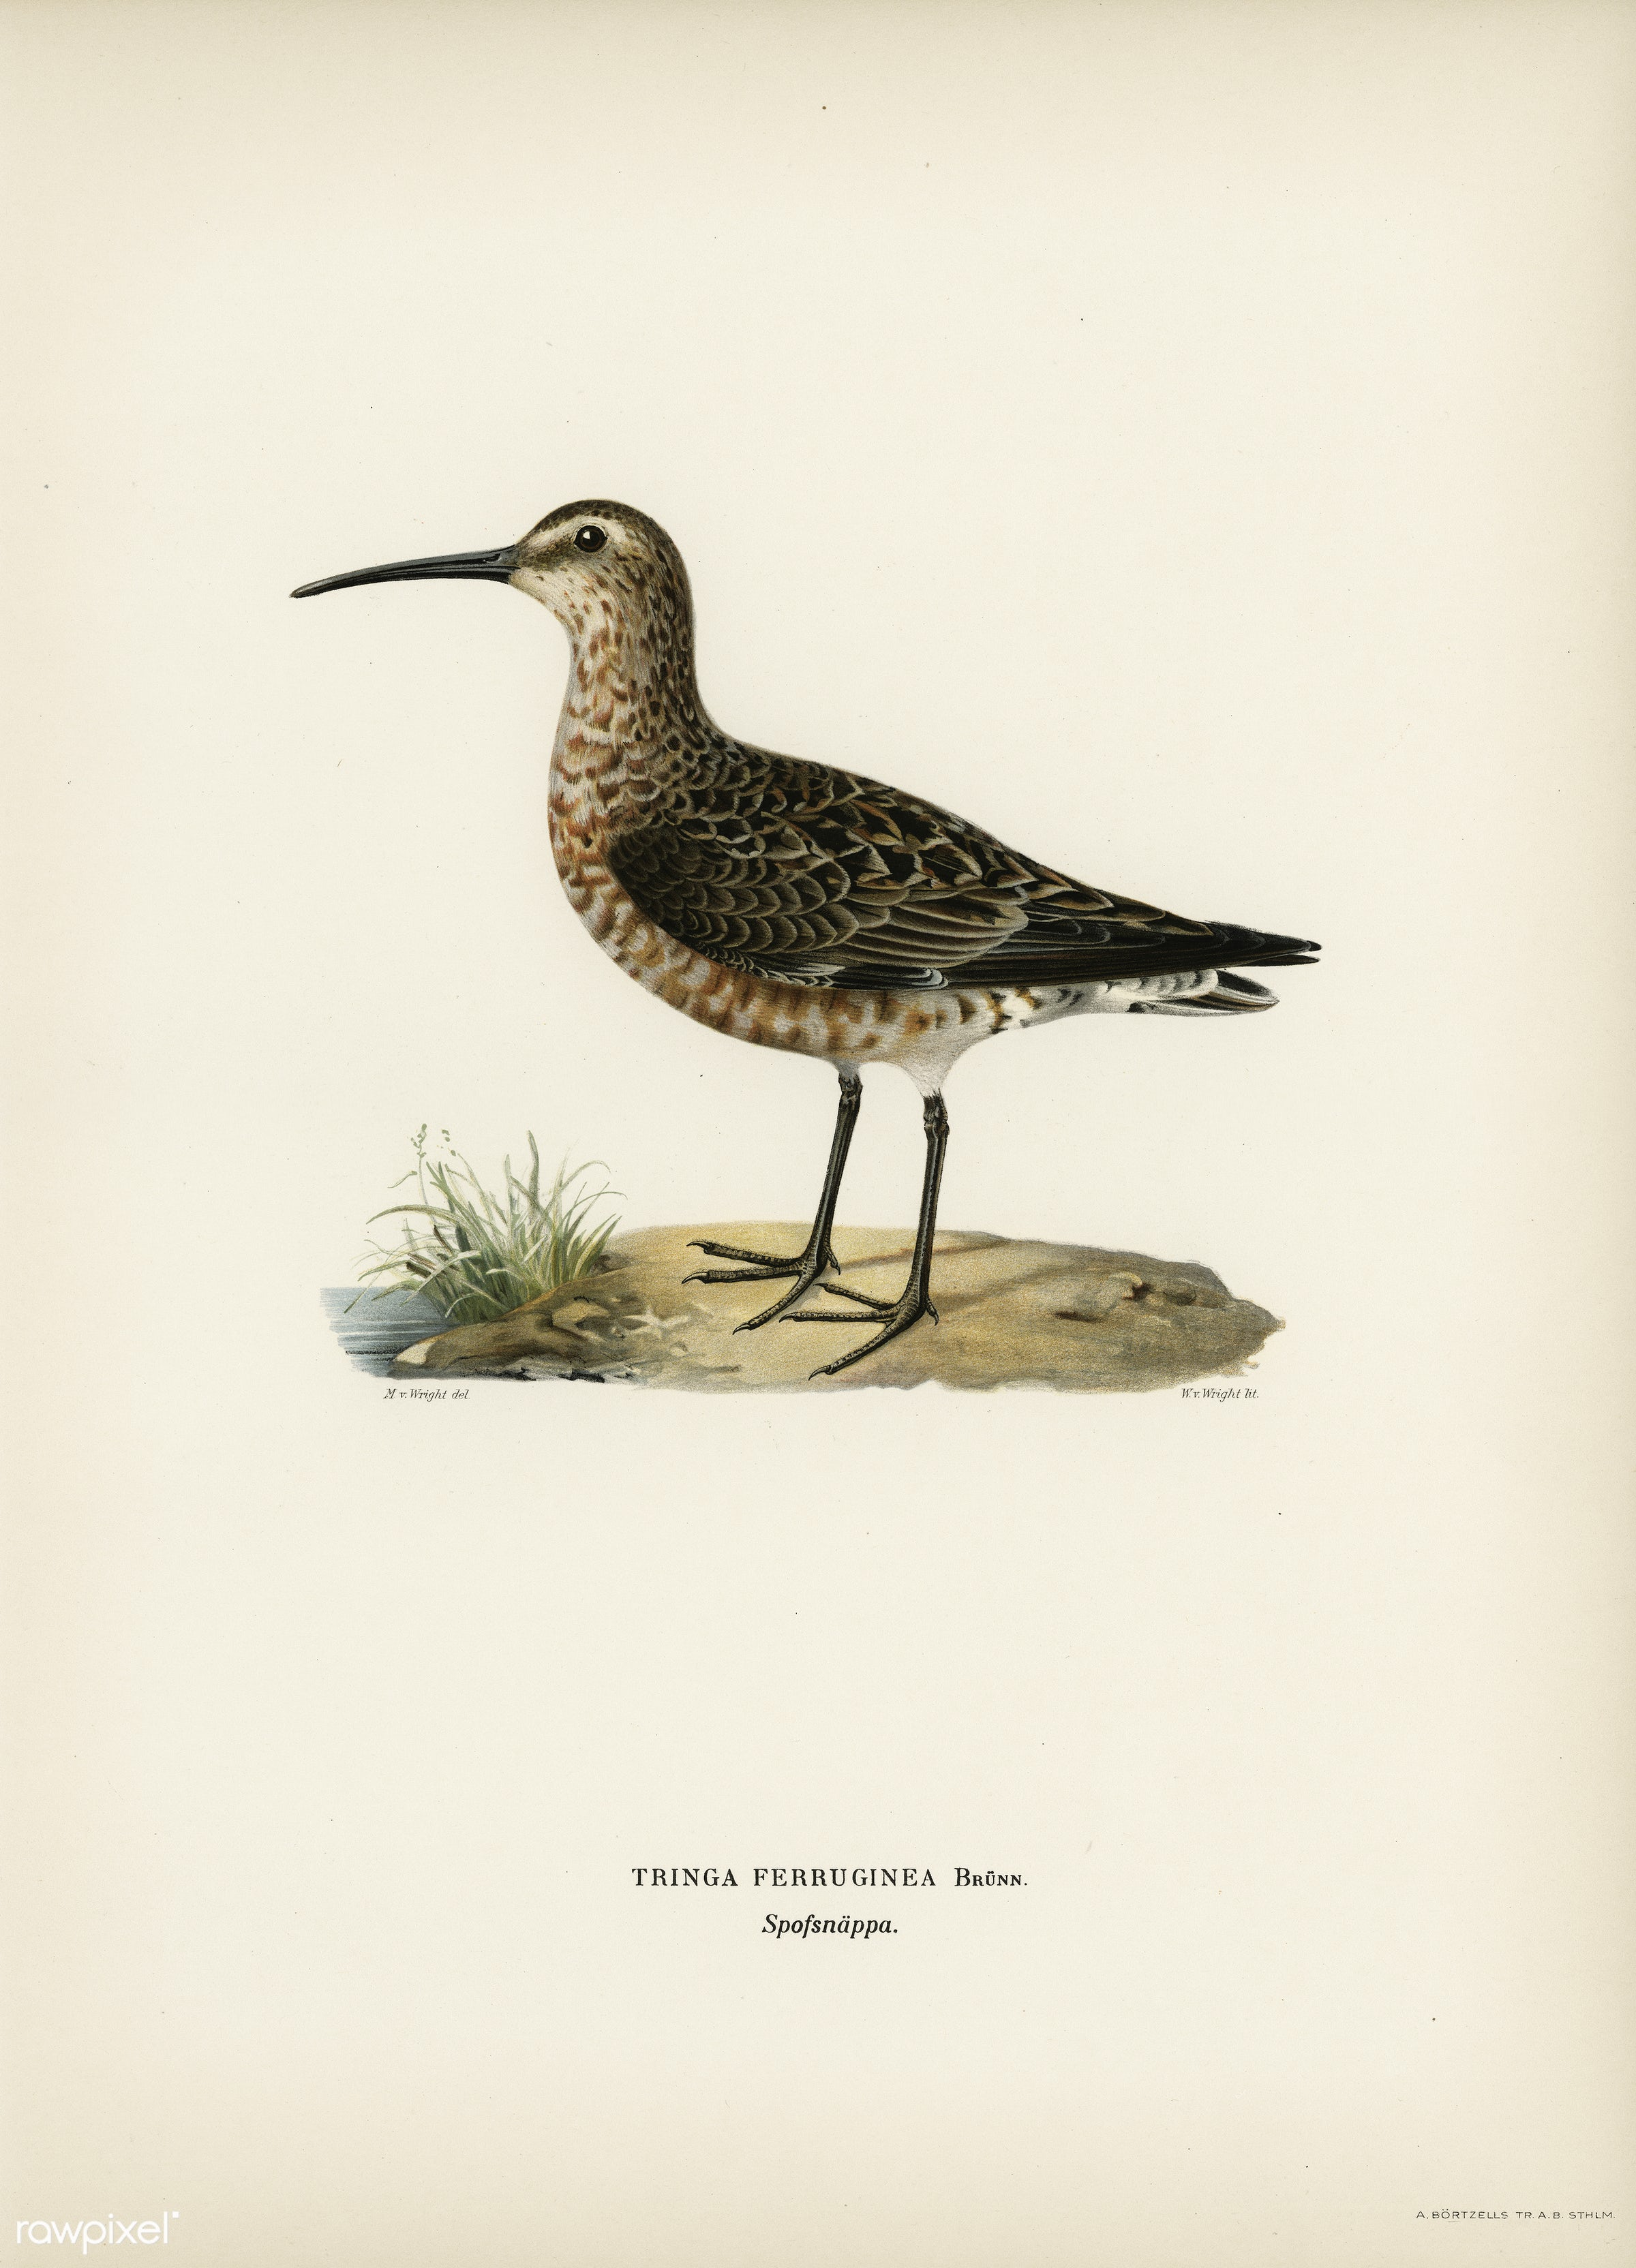 Curlew Sandpiper (Tringa ferruginea) illustrated by the von Wright brothers. Digitally enhanced from our own 1929 folio...